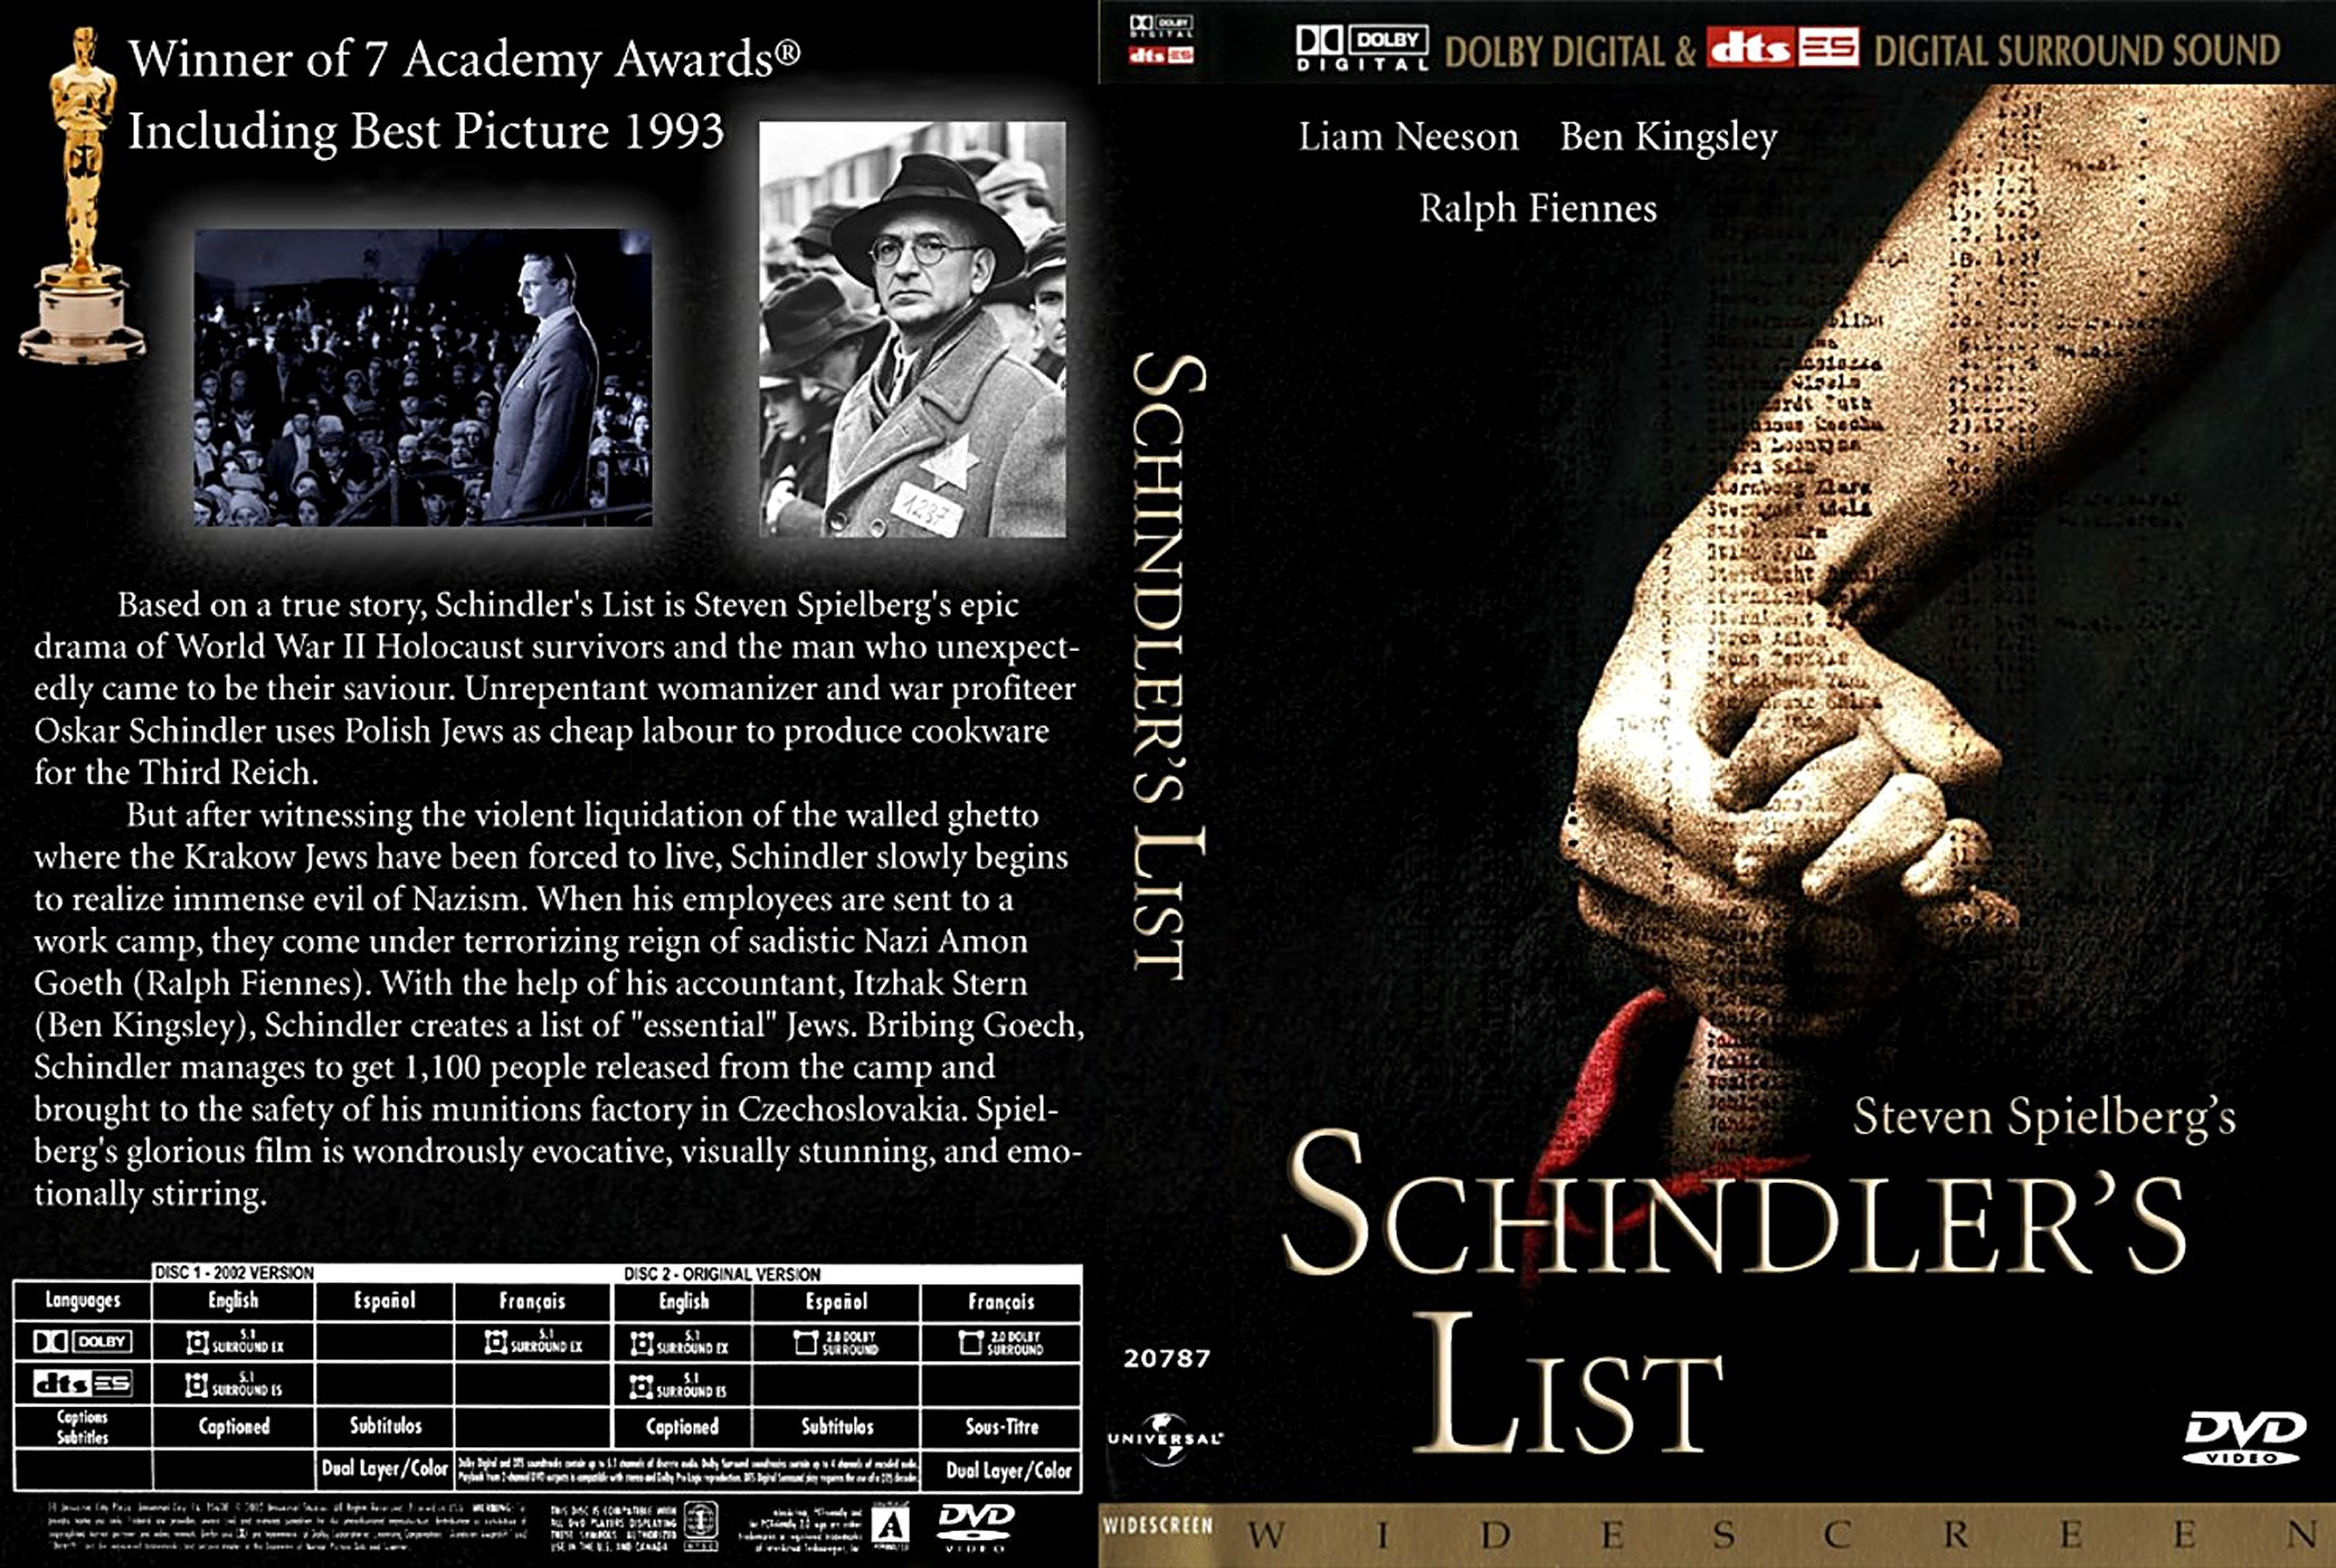 an analysis of the unkindness of the nazi party and the concept of schindlers list